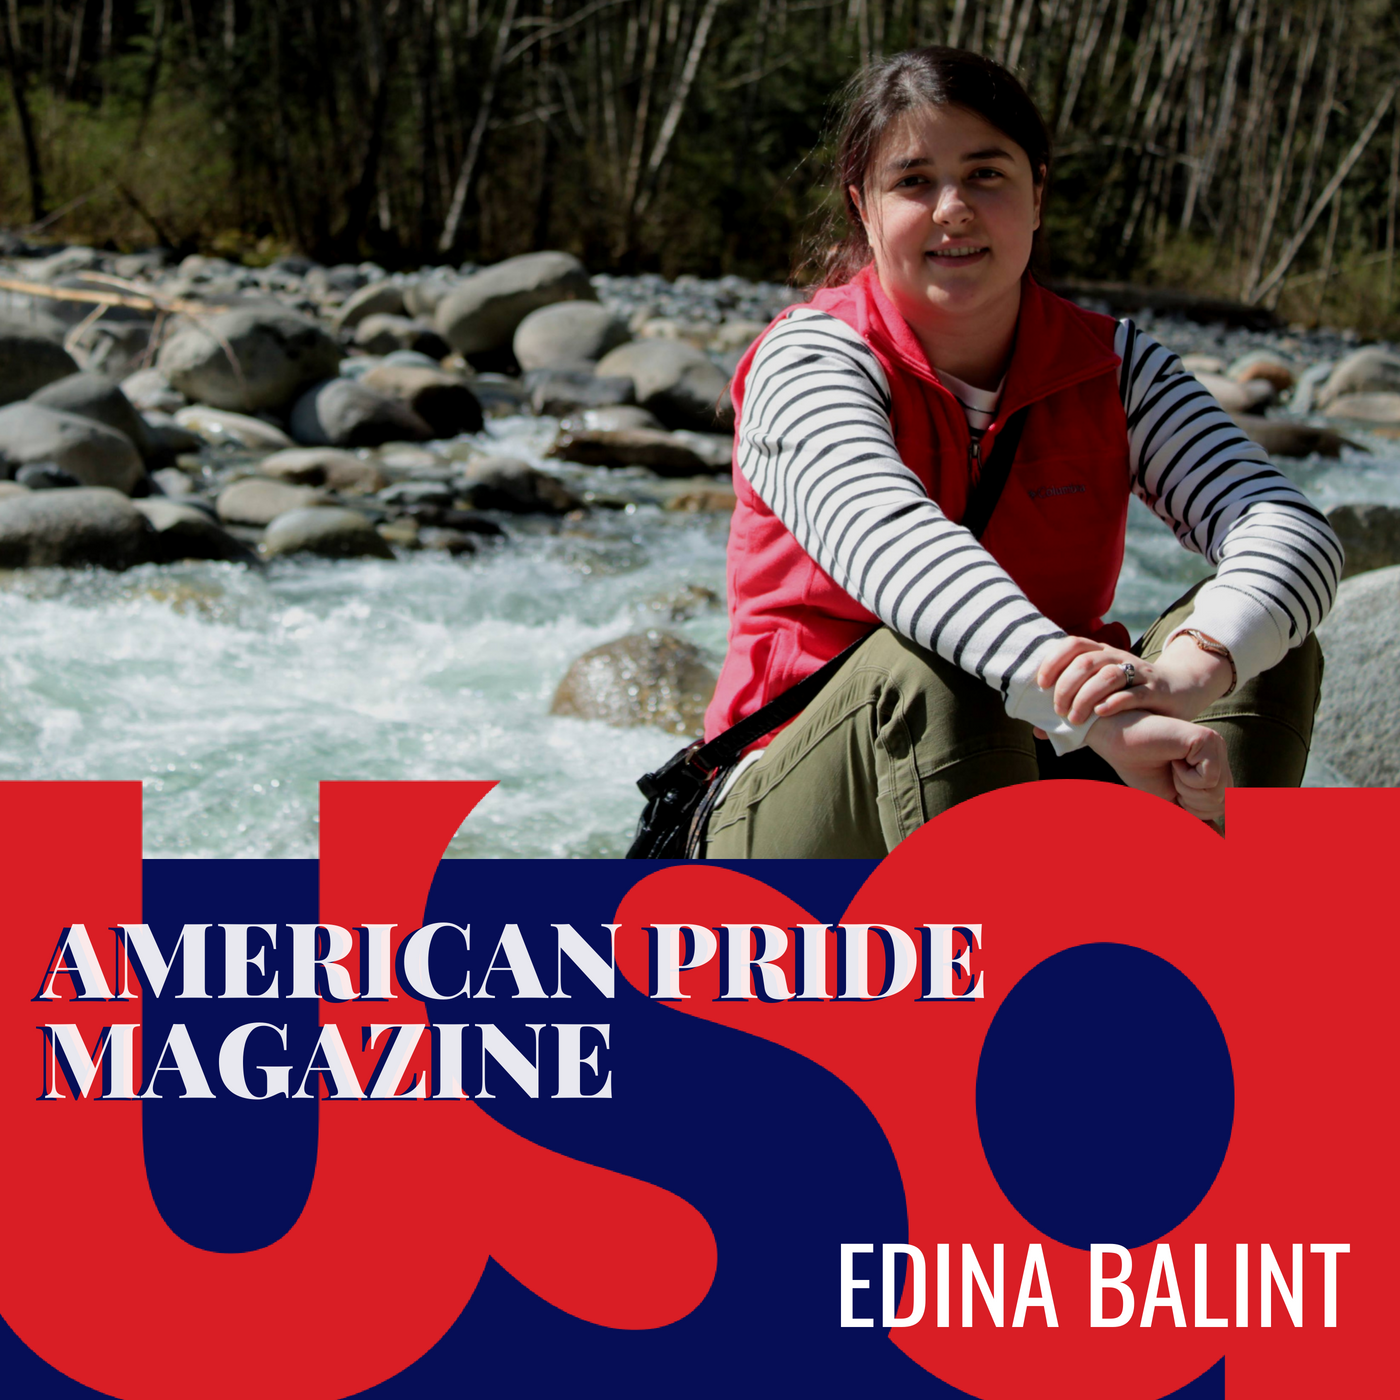 Edina Balint Her New Release Seaside Boulevard